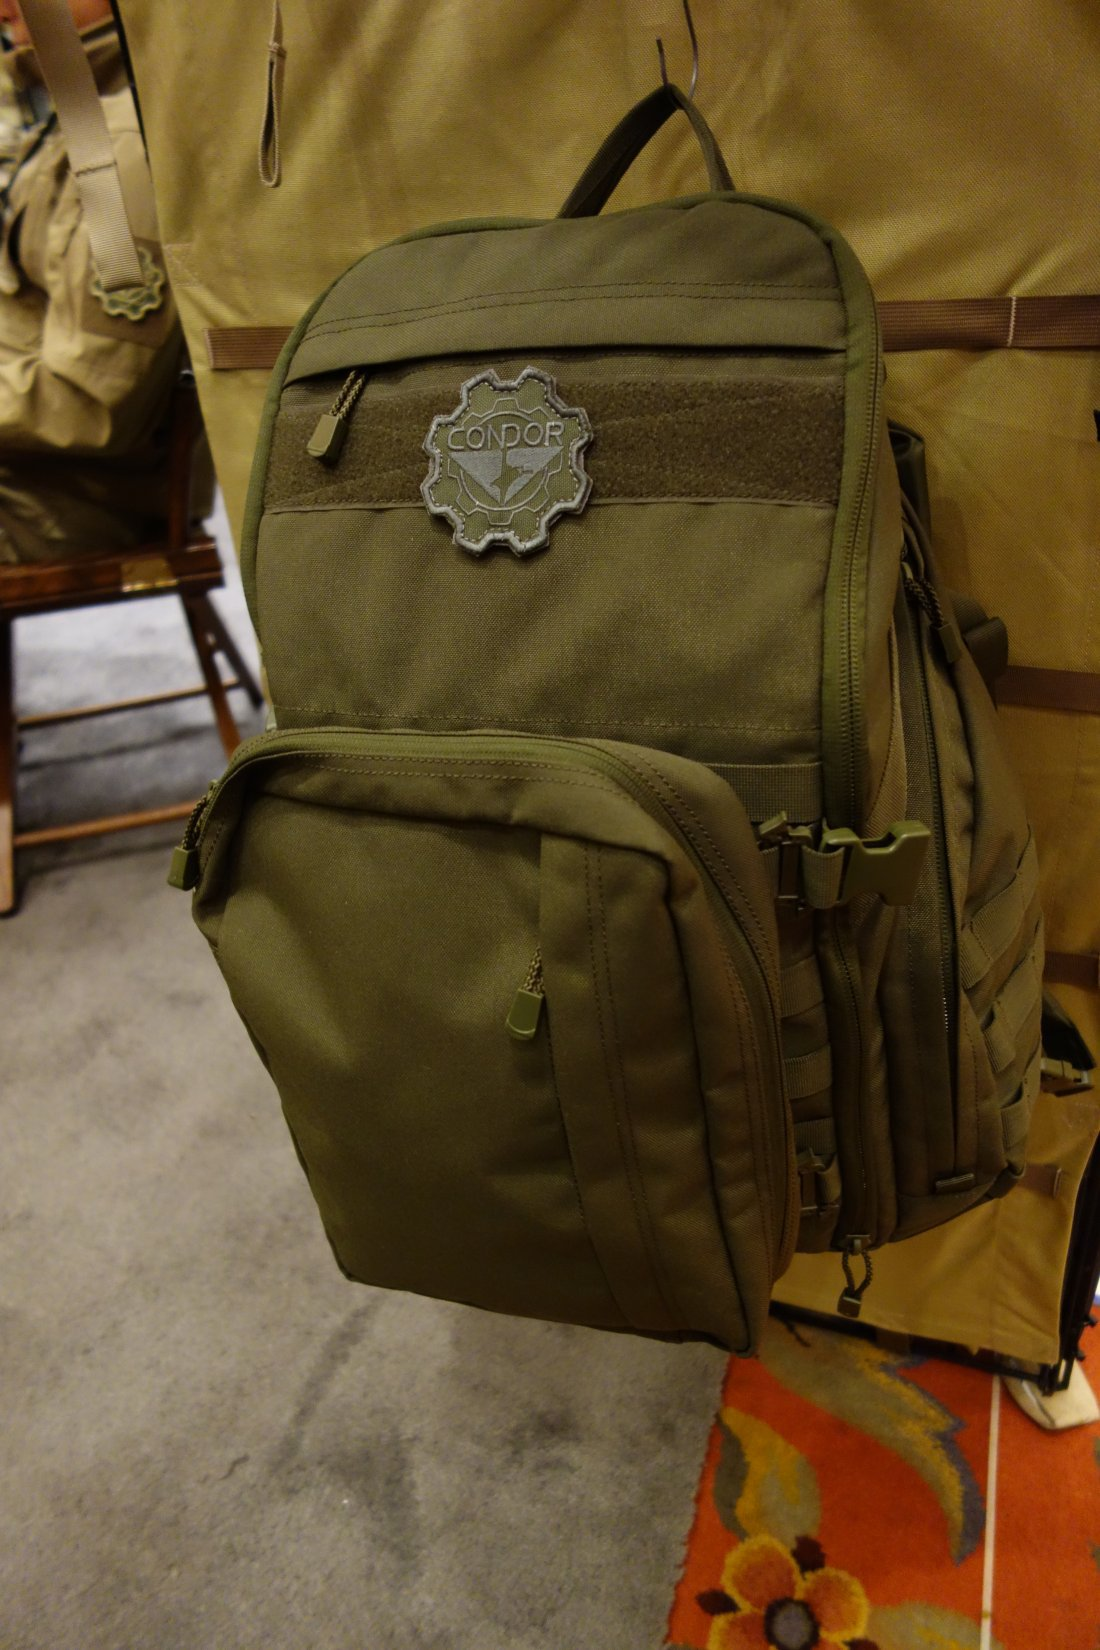 Condor Outdoor Bison Backpack Combat Tactical Pack with Tactical Hydration Capability Andy Chen SHOT Show 2013 David Crane DefenseReview.com DR 2 Condor Bison Backpack: Combat/Tactical Pack with Tactical Hydration Capability  and it can Carry Your Laptop! (Video!)